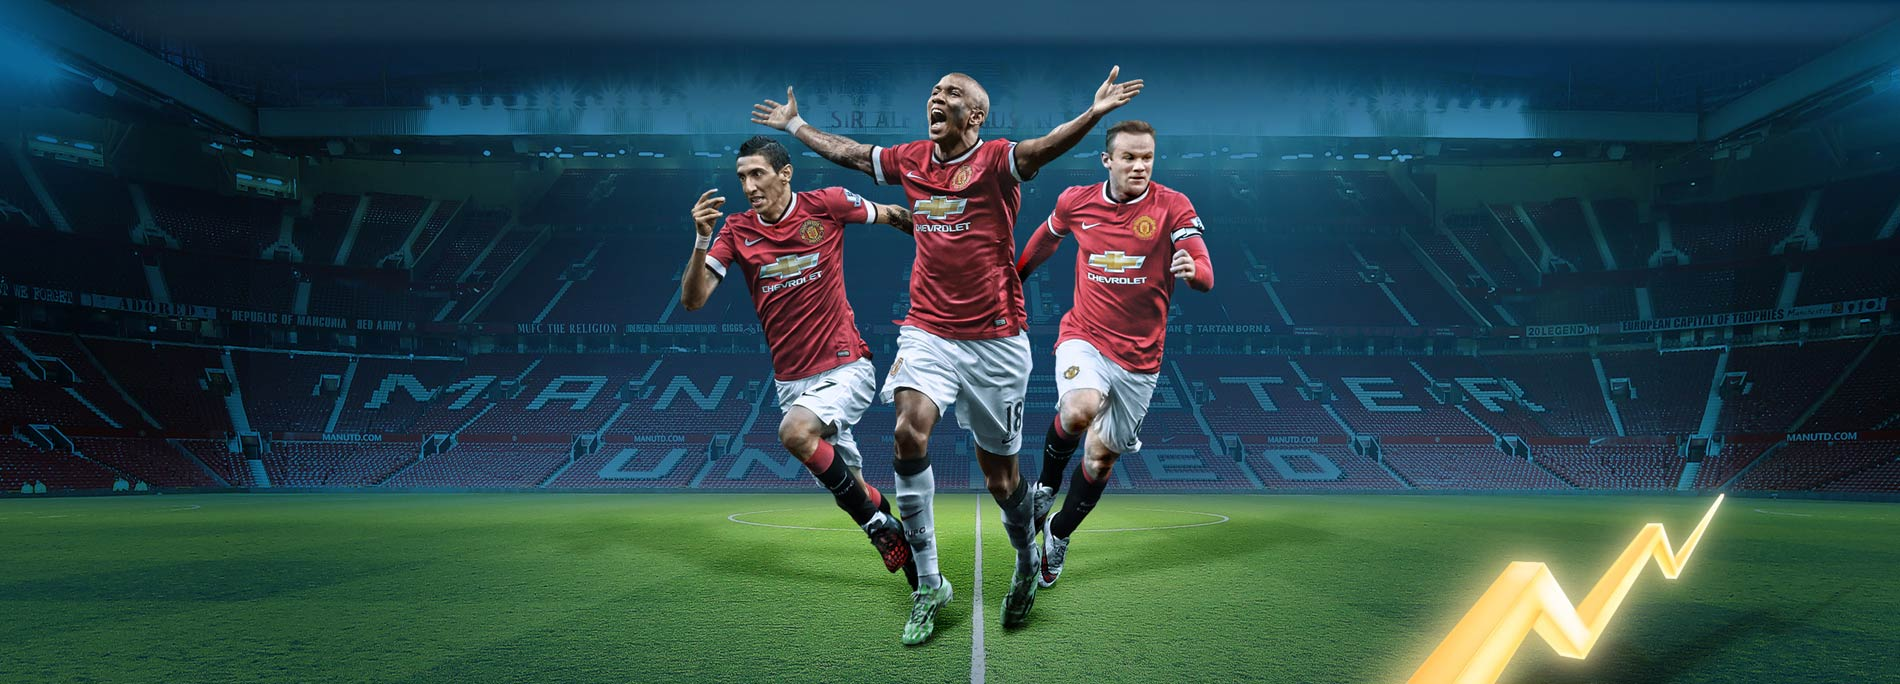 Bank-Manchester-United-Swissquote